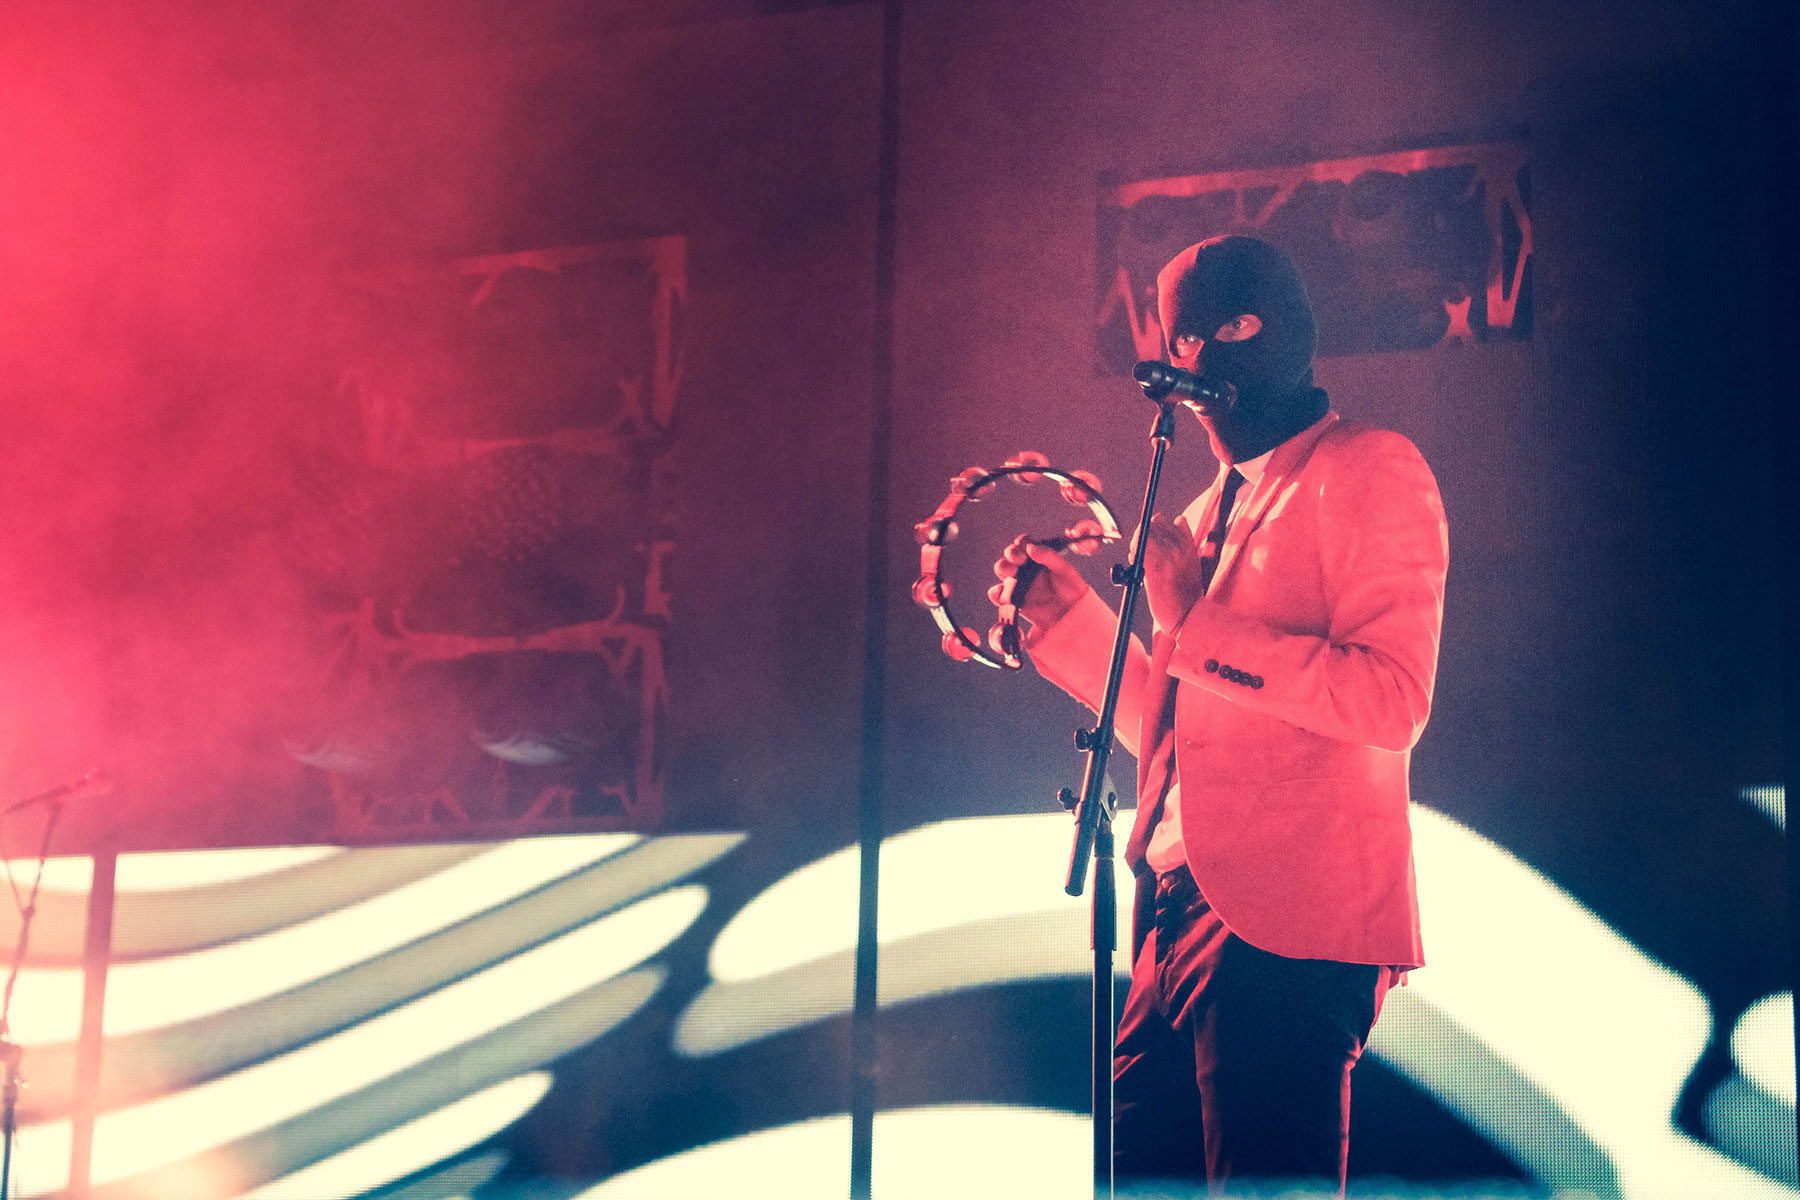 Twenty One Pilots remixed by Mutemath's Paul Meany for